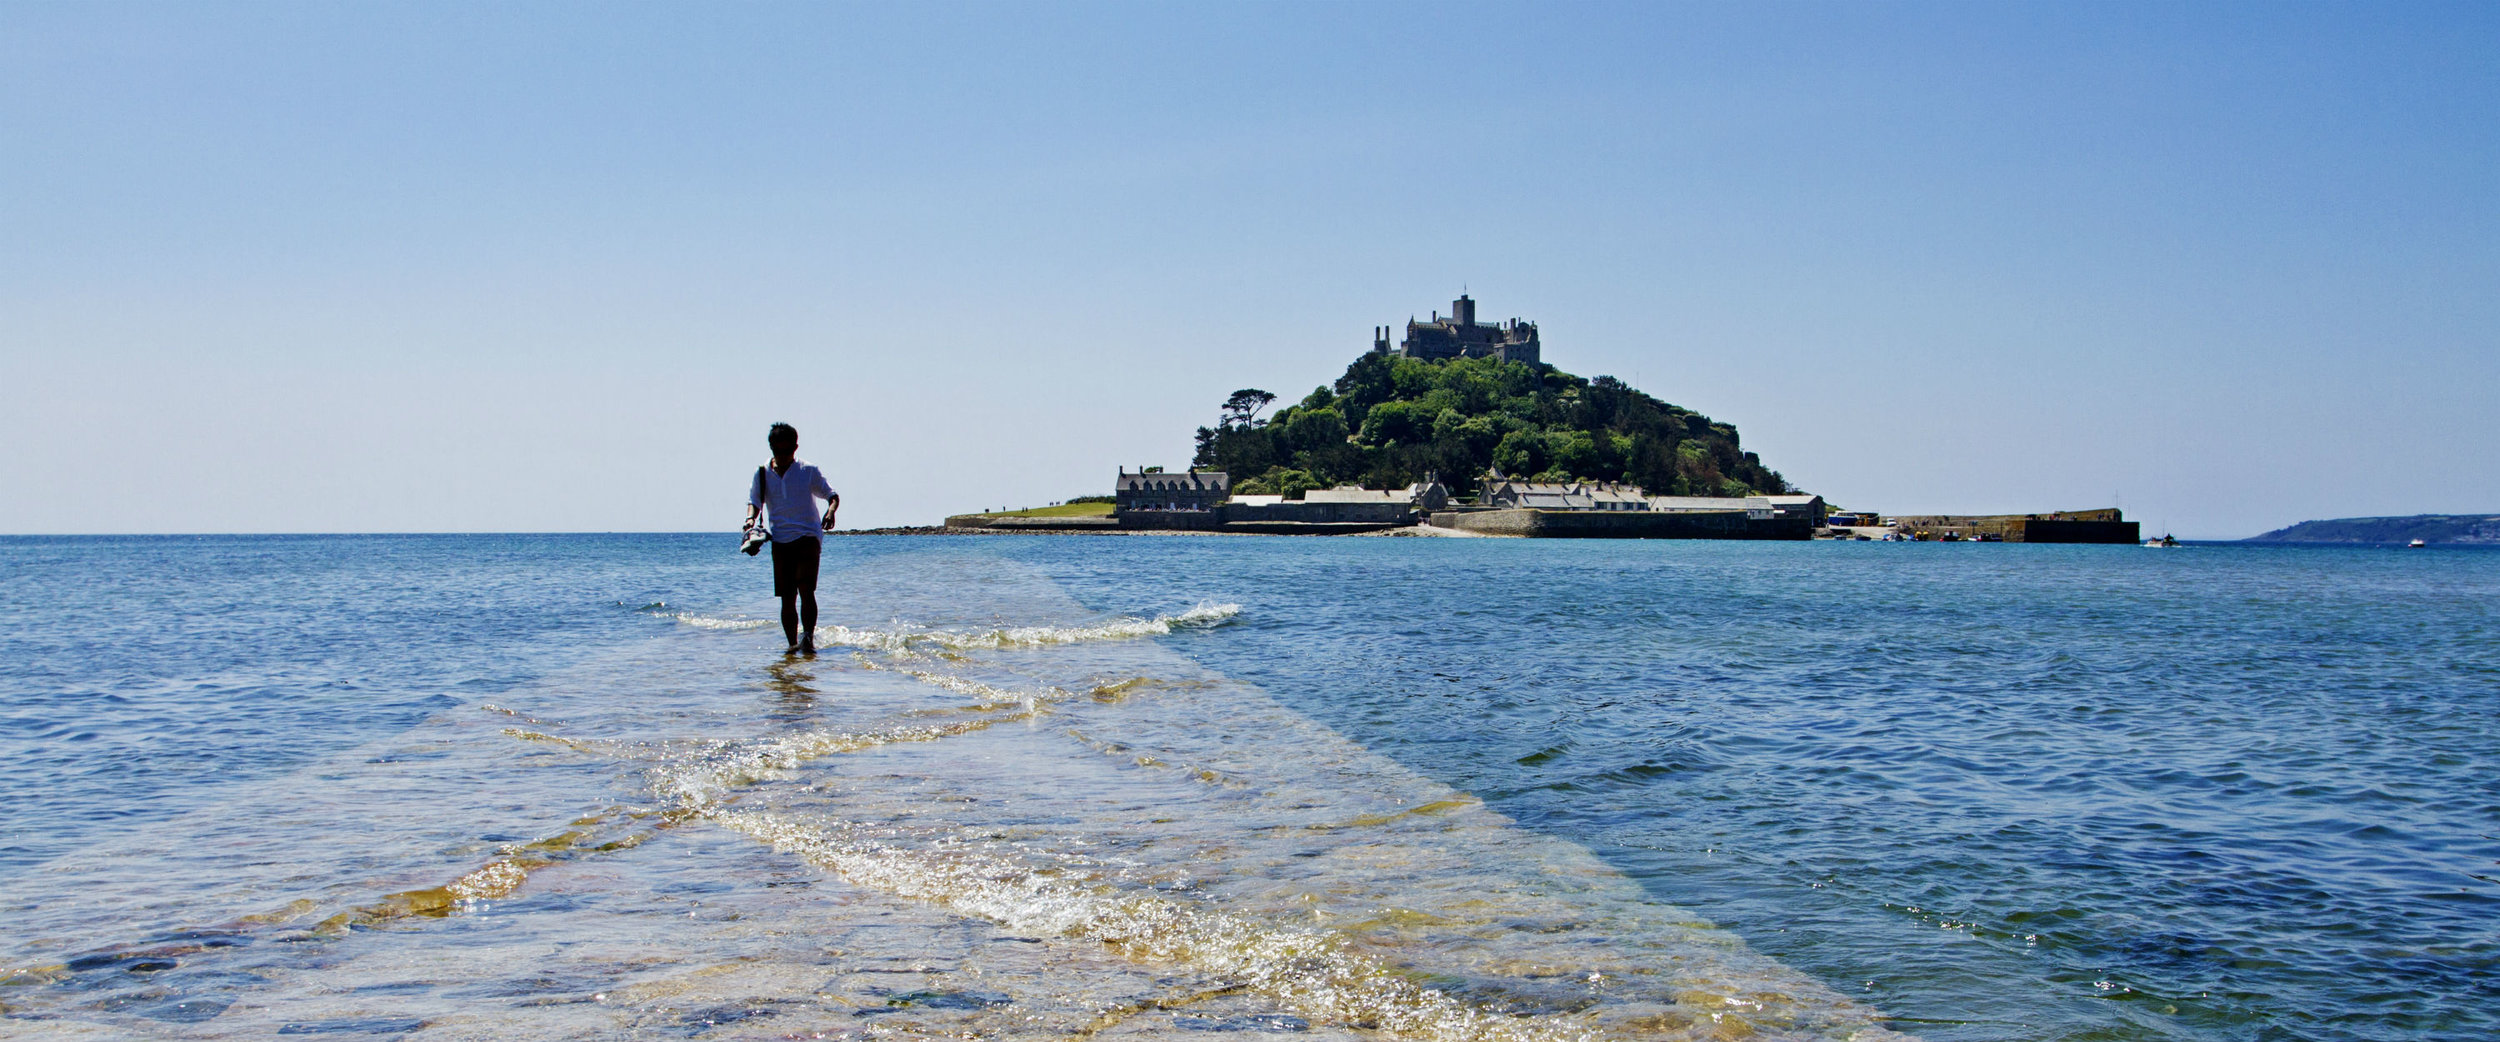 1. St Michael's Mount - An imposing sight with an amazingly rich history sits just 400 yards away from Marazion across the bay. It's an unmissable place to visit during your stay. The National Trust protected site has stunning gardens, unique geology and prominent atop the mount is a 12th century living castle.